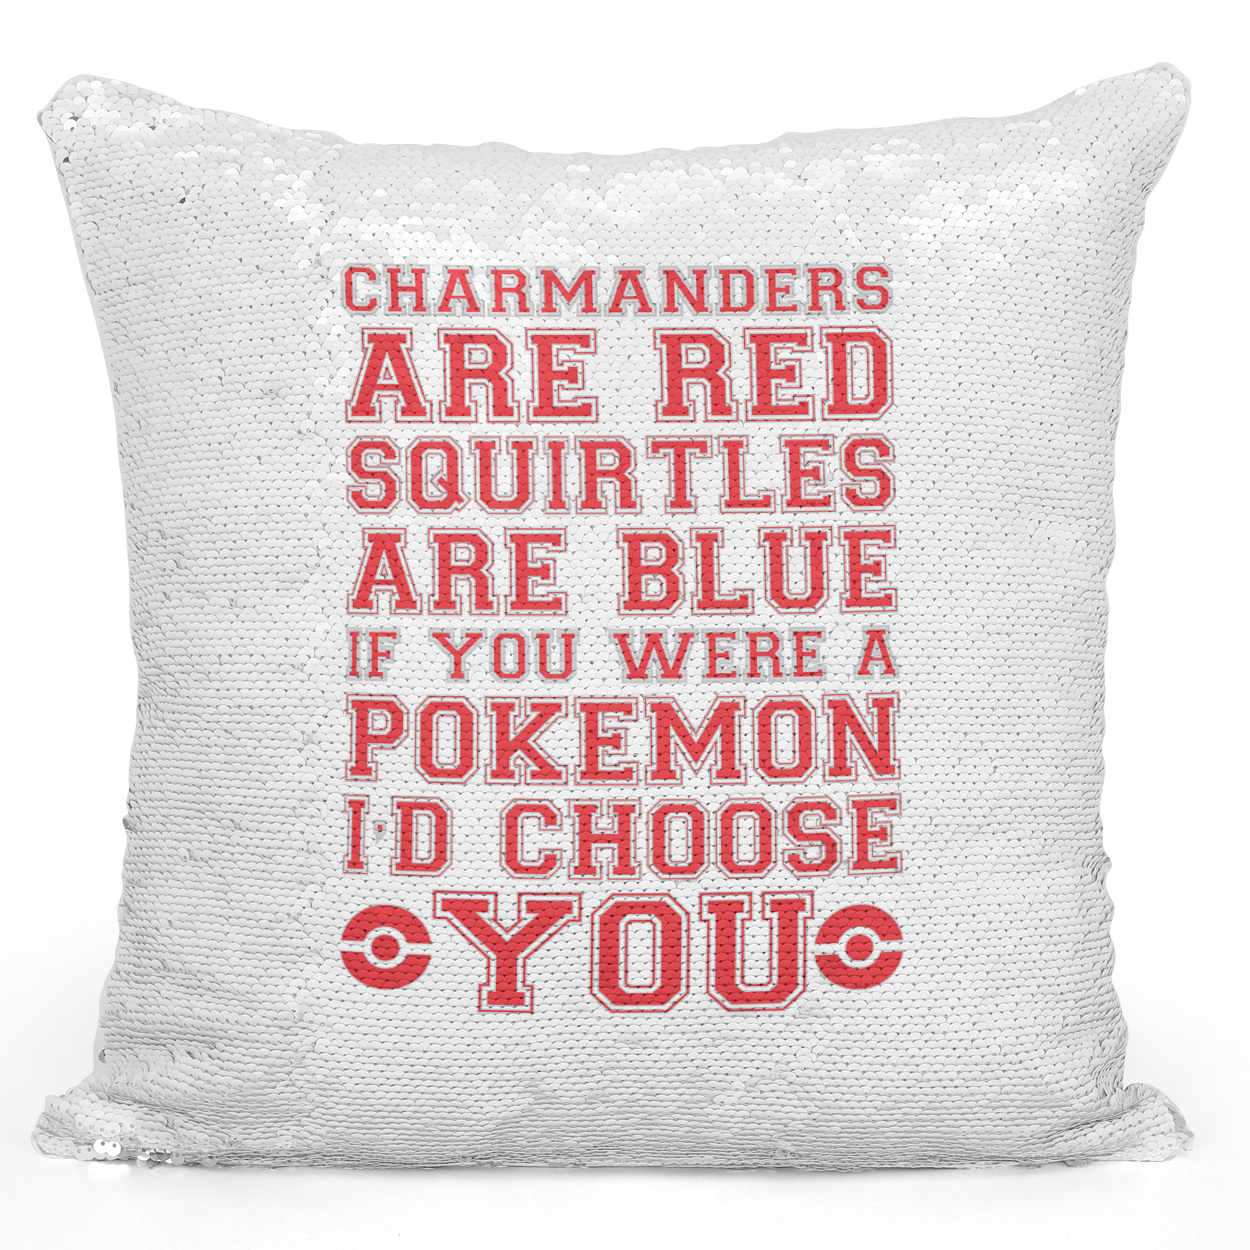 Sequin Pillow Magic Mermaid Throw Pillow Charmander Squirtle And Pokemon Love Couple Quote Couple Pillow - Premium 100% Polyester 16 x 16 inch Square Modern Livingroom Decorative Pillow Loud Universe